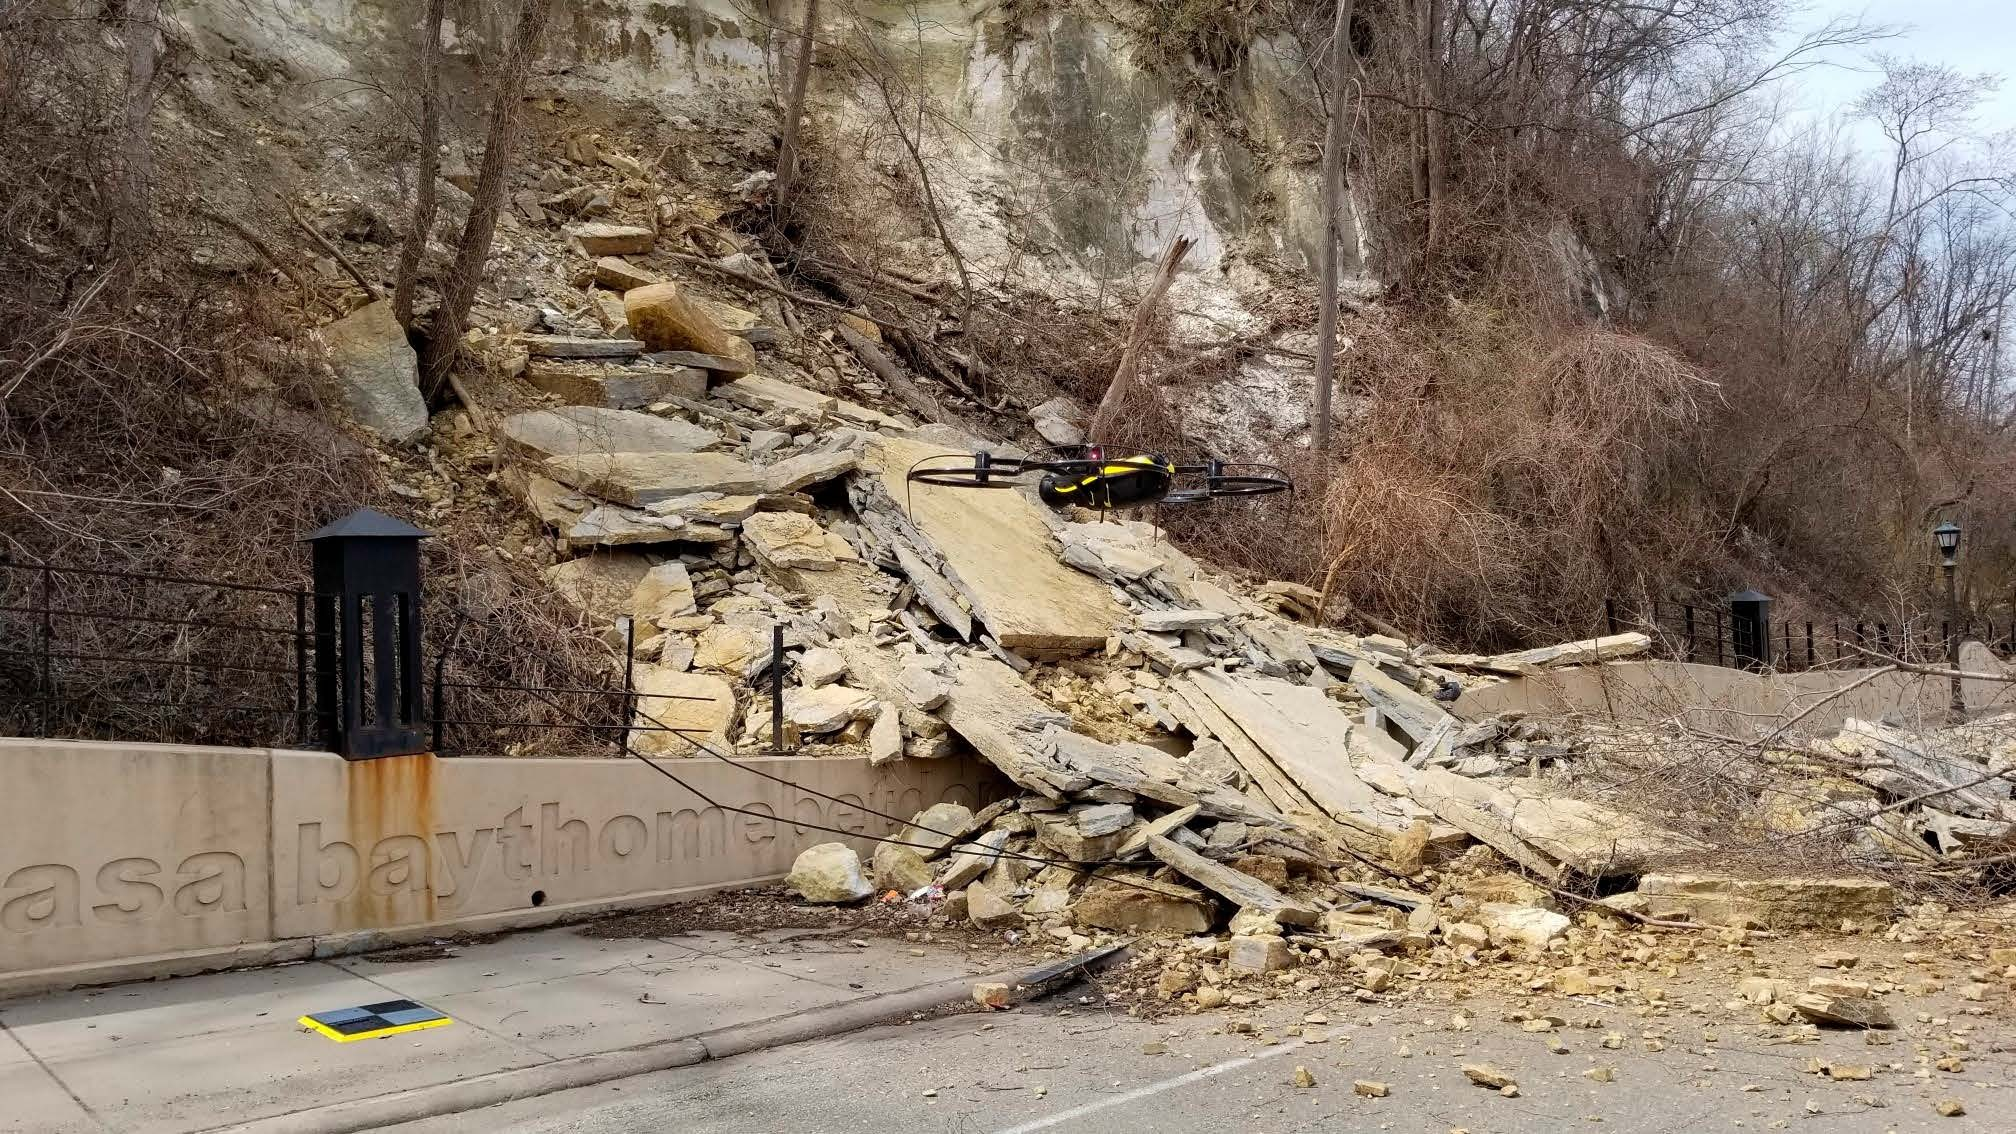 A drone hovering in front of the Wabasha Street rockslide.